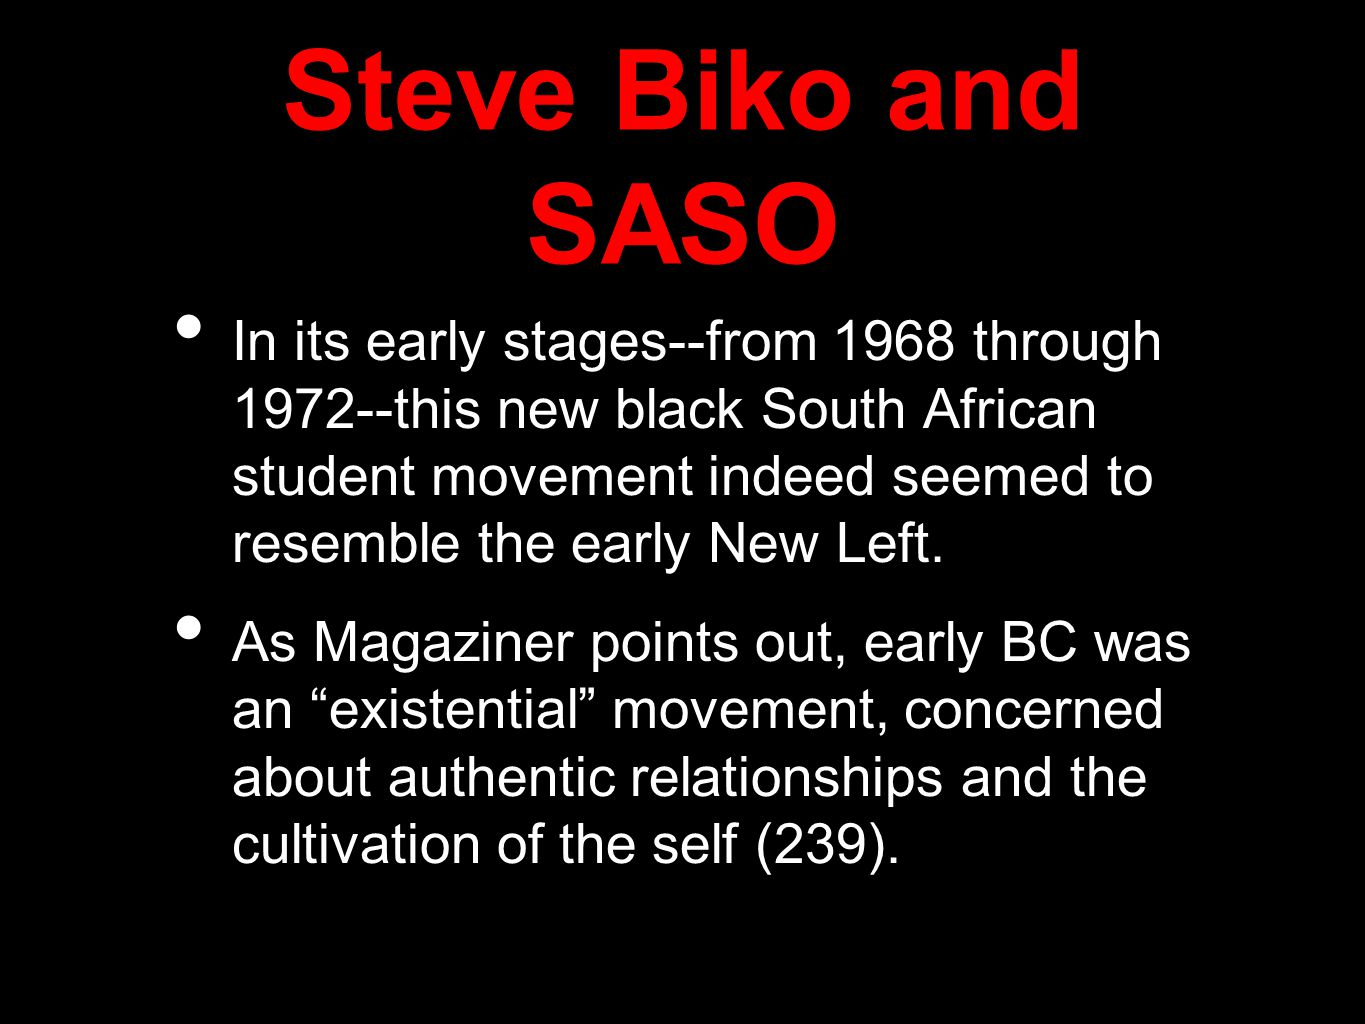 Steve Biko and SASO In its early stages--from 1968 through 1972--this new black South African student movement indeed seemed to resemble the early New Left.